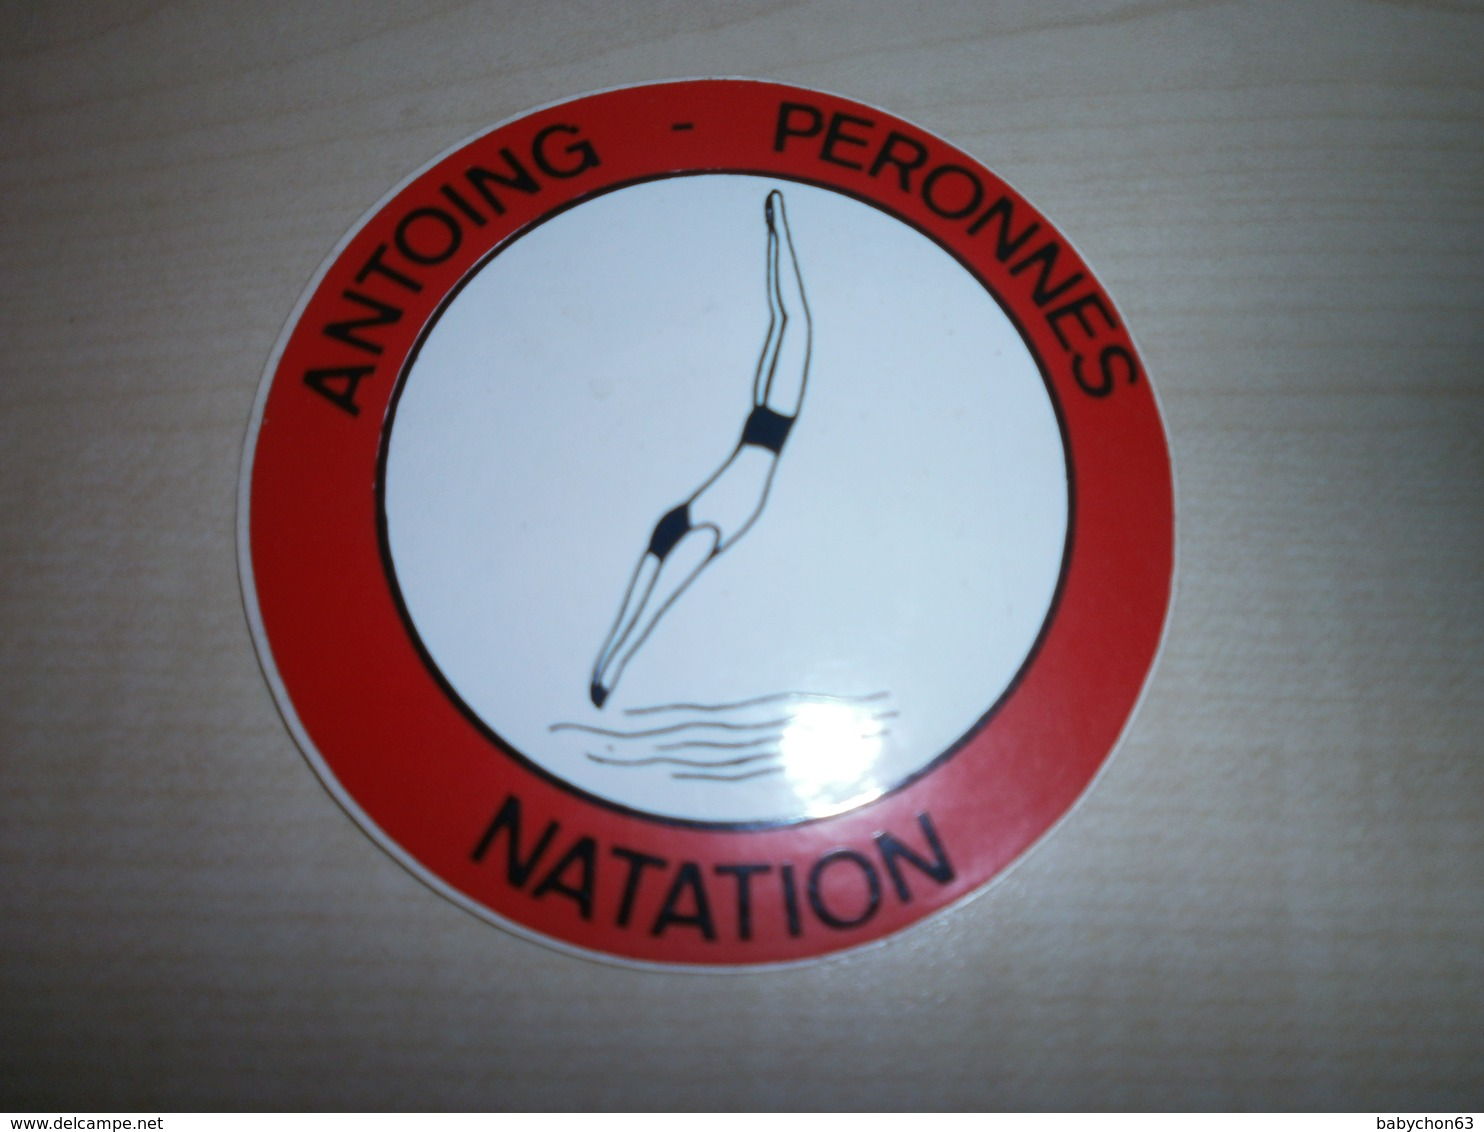 Autocollant Ancien ANTOING-PERONNES   NATATION - Stickers